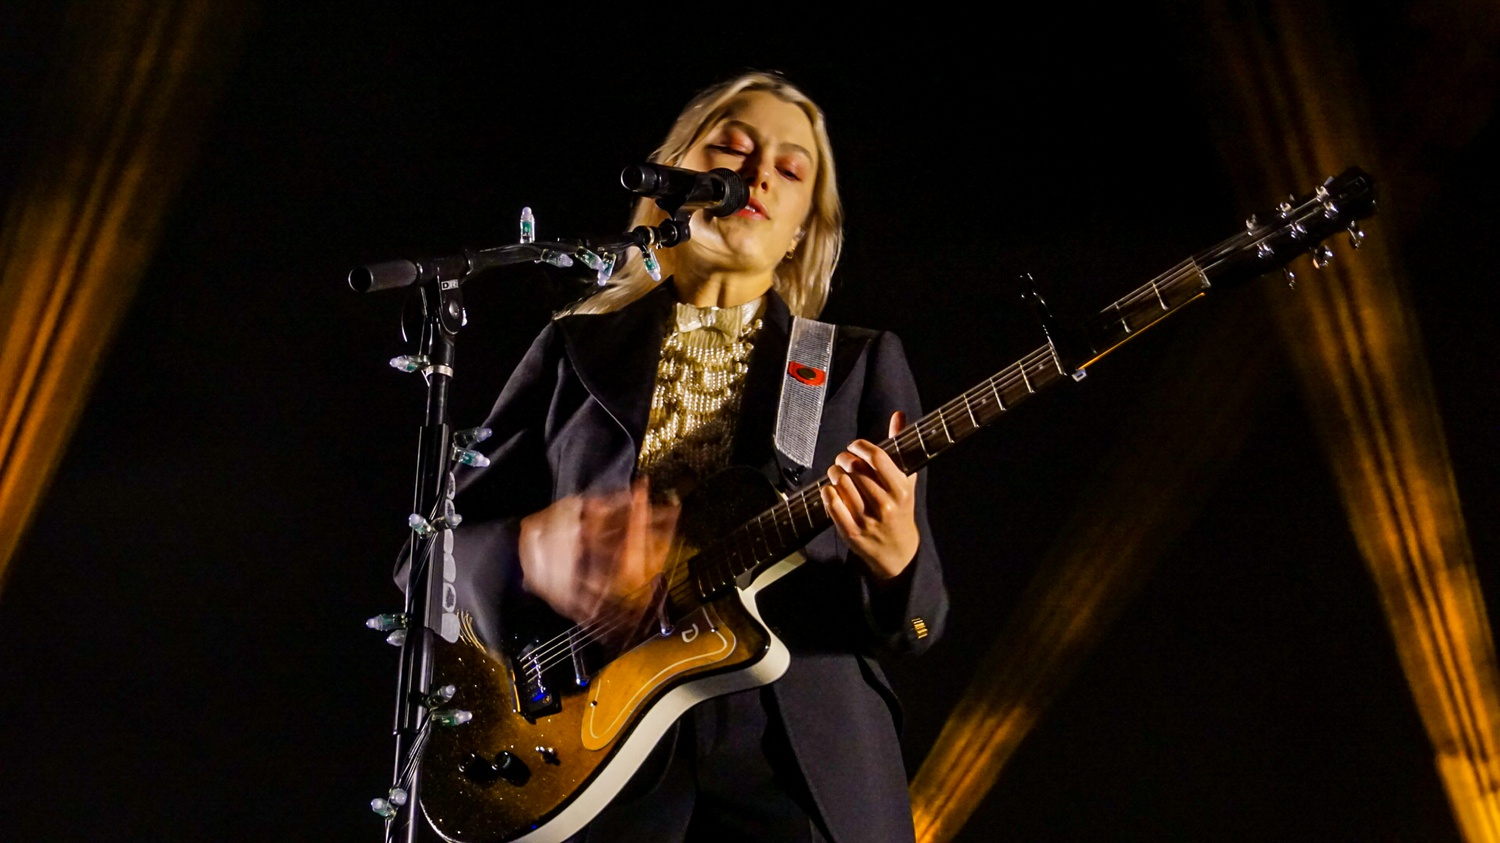 Phoebe Bridgers at her Sept. 27 show at the Leader Bank Pavilion in Boston.